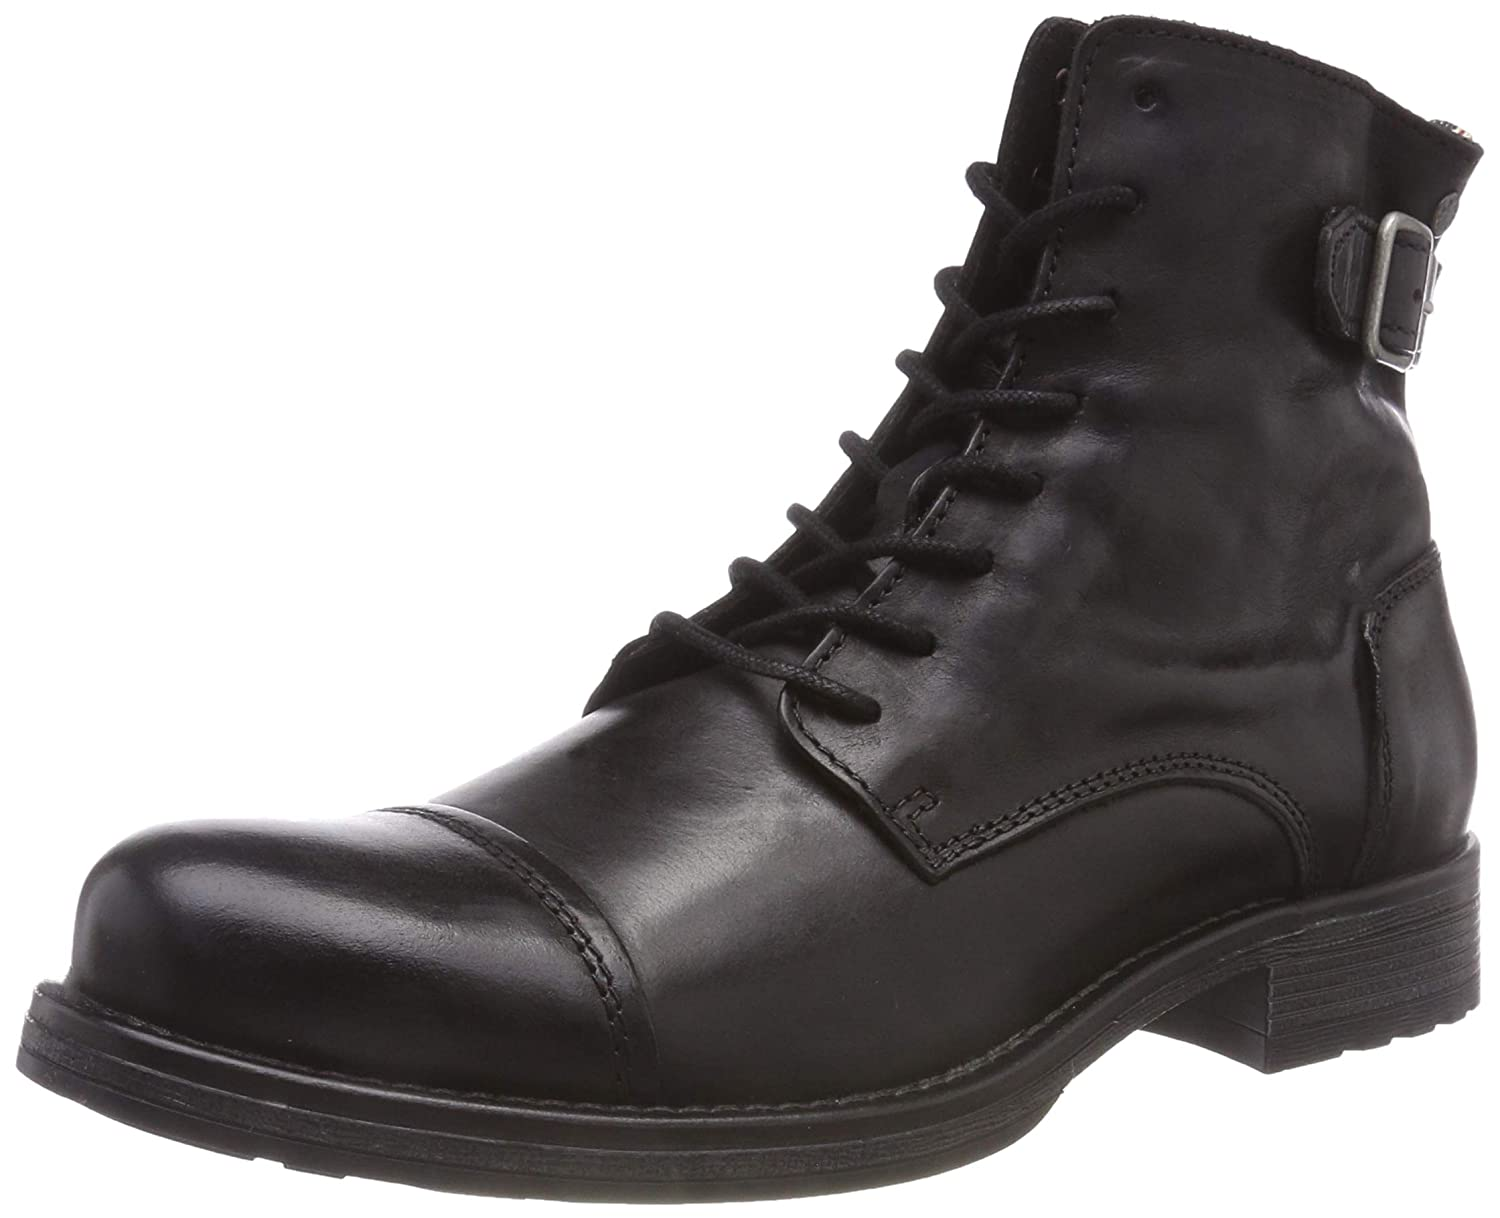 TALLA 40 EU. Jack & Jones Jfwsiti Leather Anthracite, Botas Clasicas para Hombre